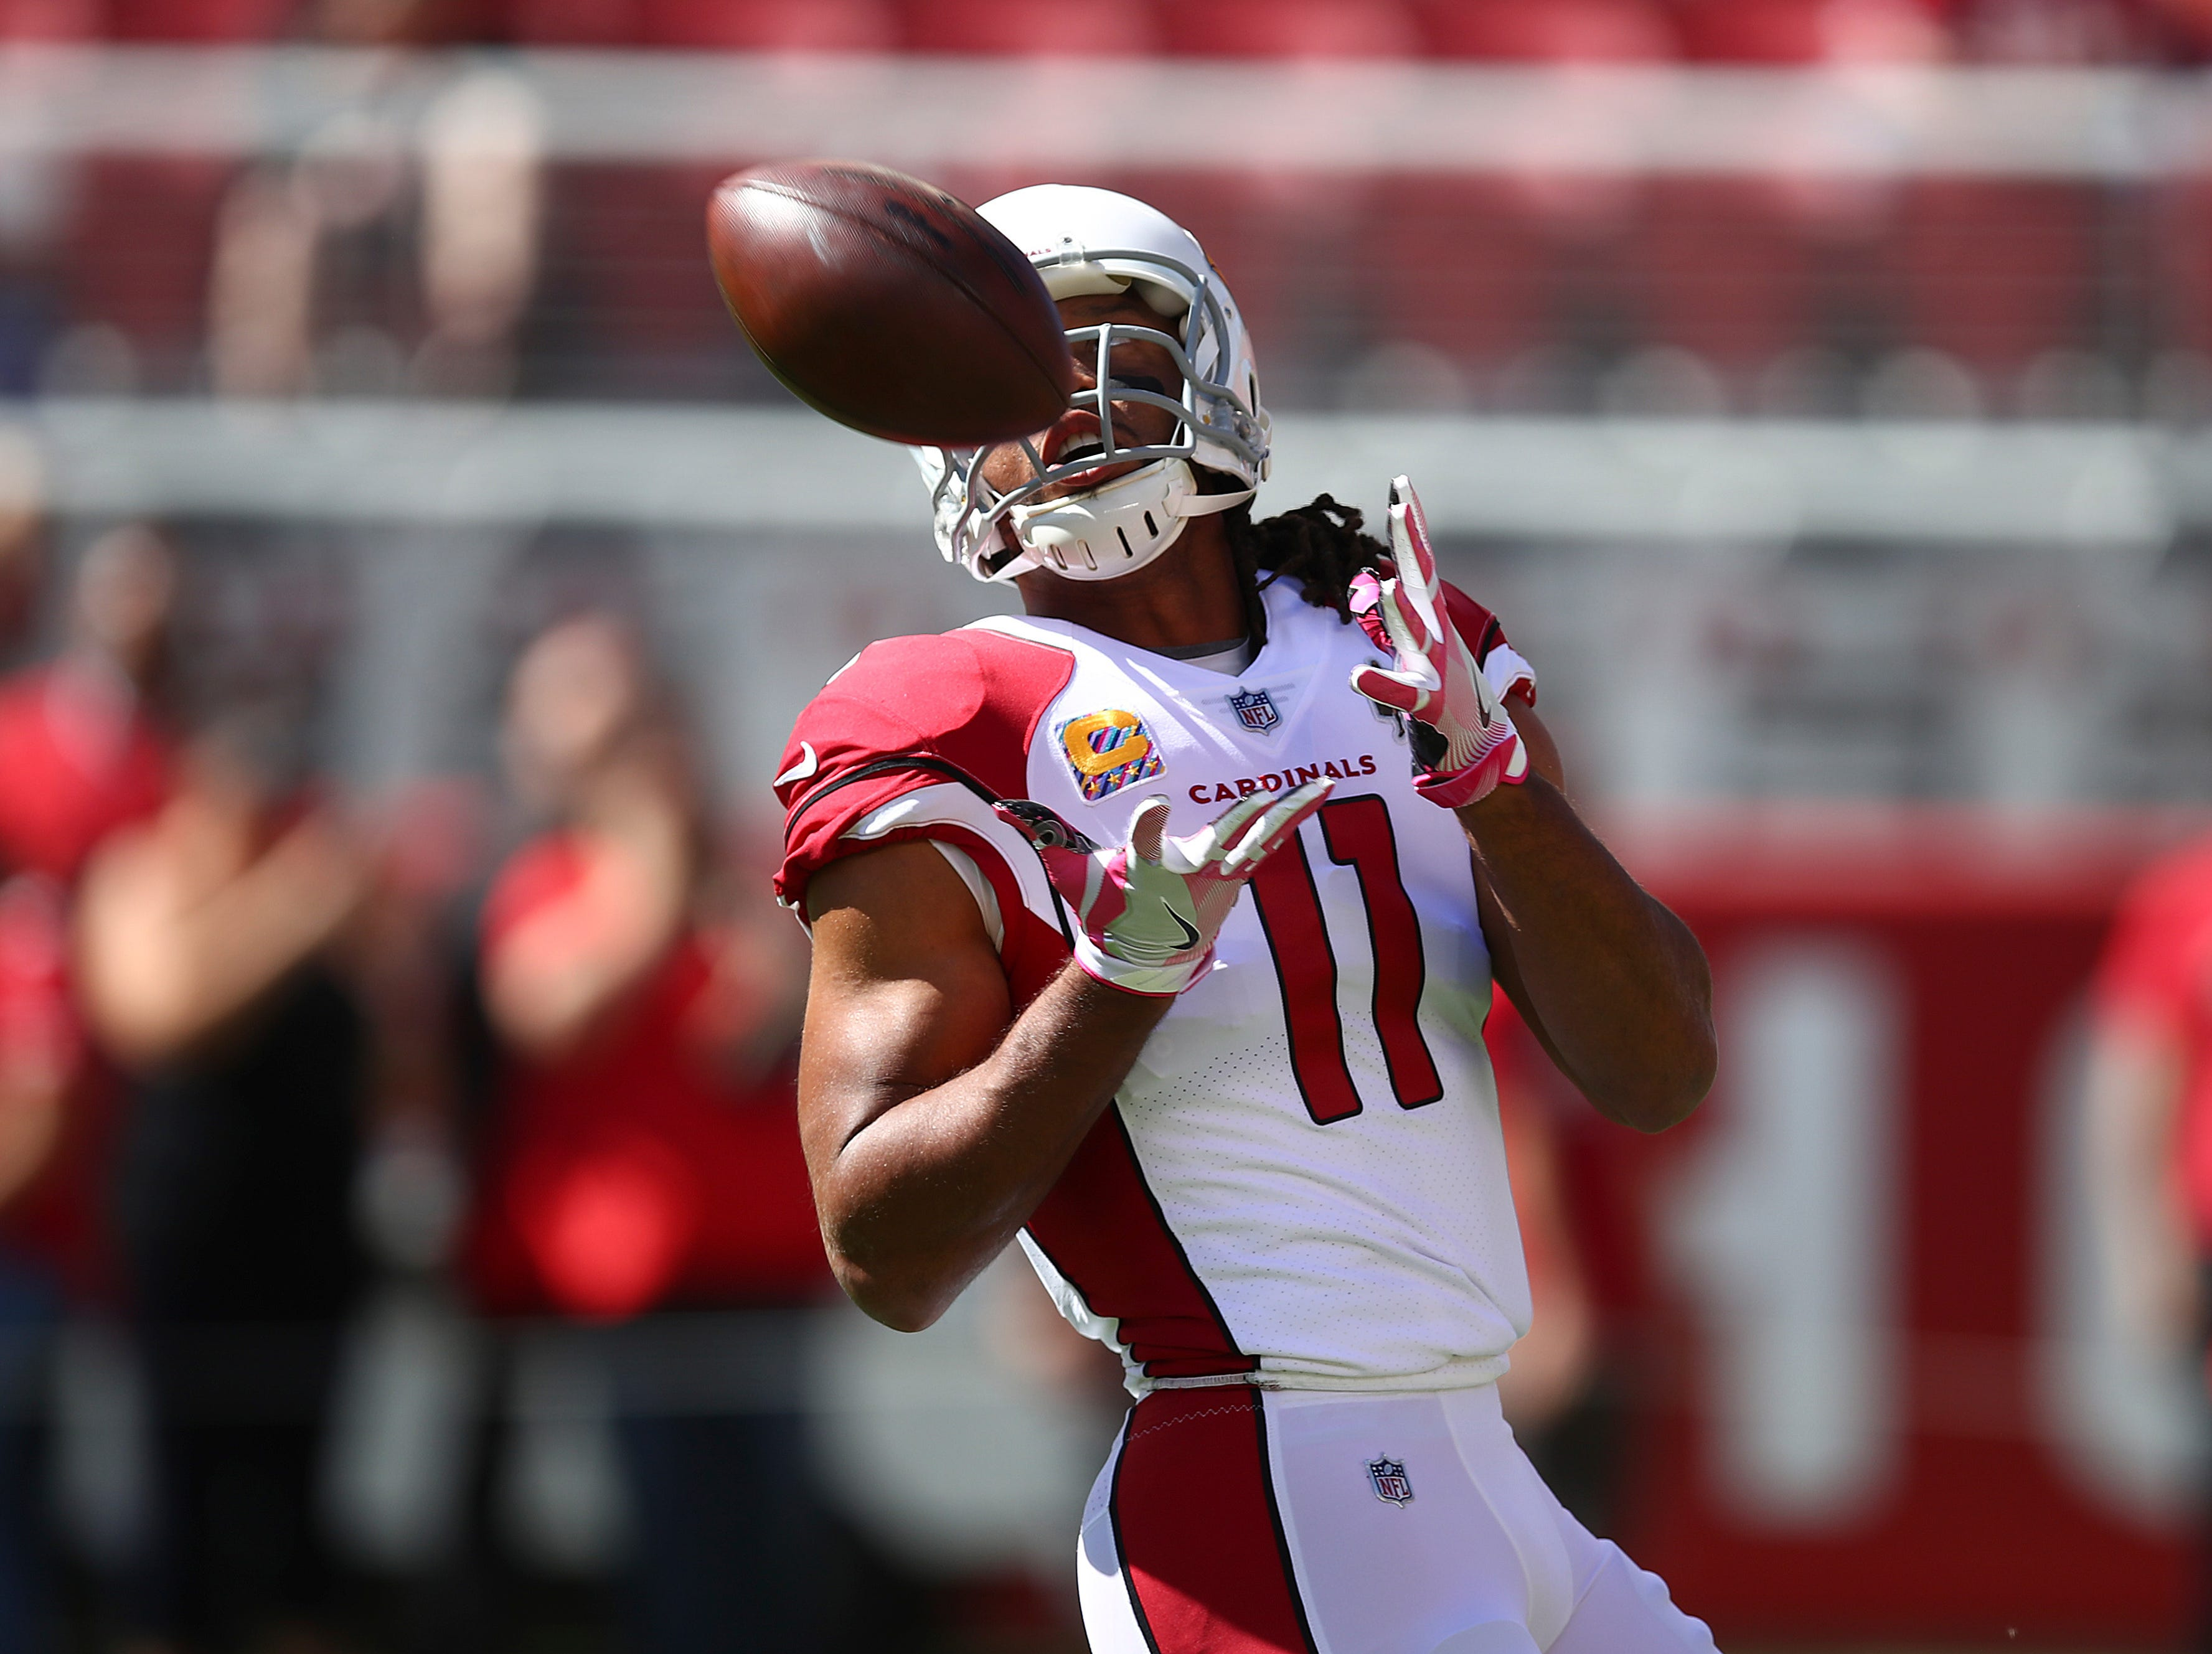 Arizona Cardinals wide receiver Larry Fitzgerald (11) warms up before an NFL football game against the San Francisco 49ers in Santa Clara, Calif., Sunday, Oct. 7, 2018.